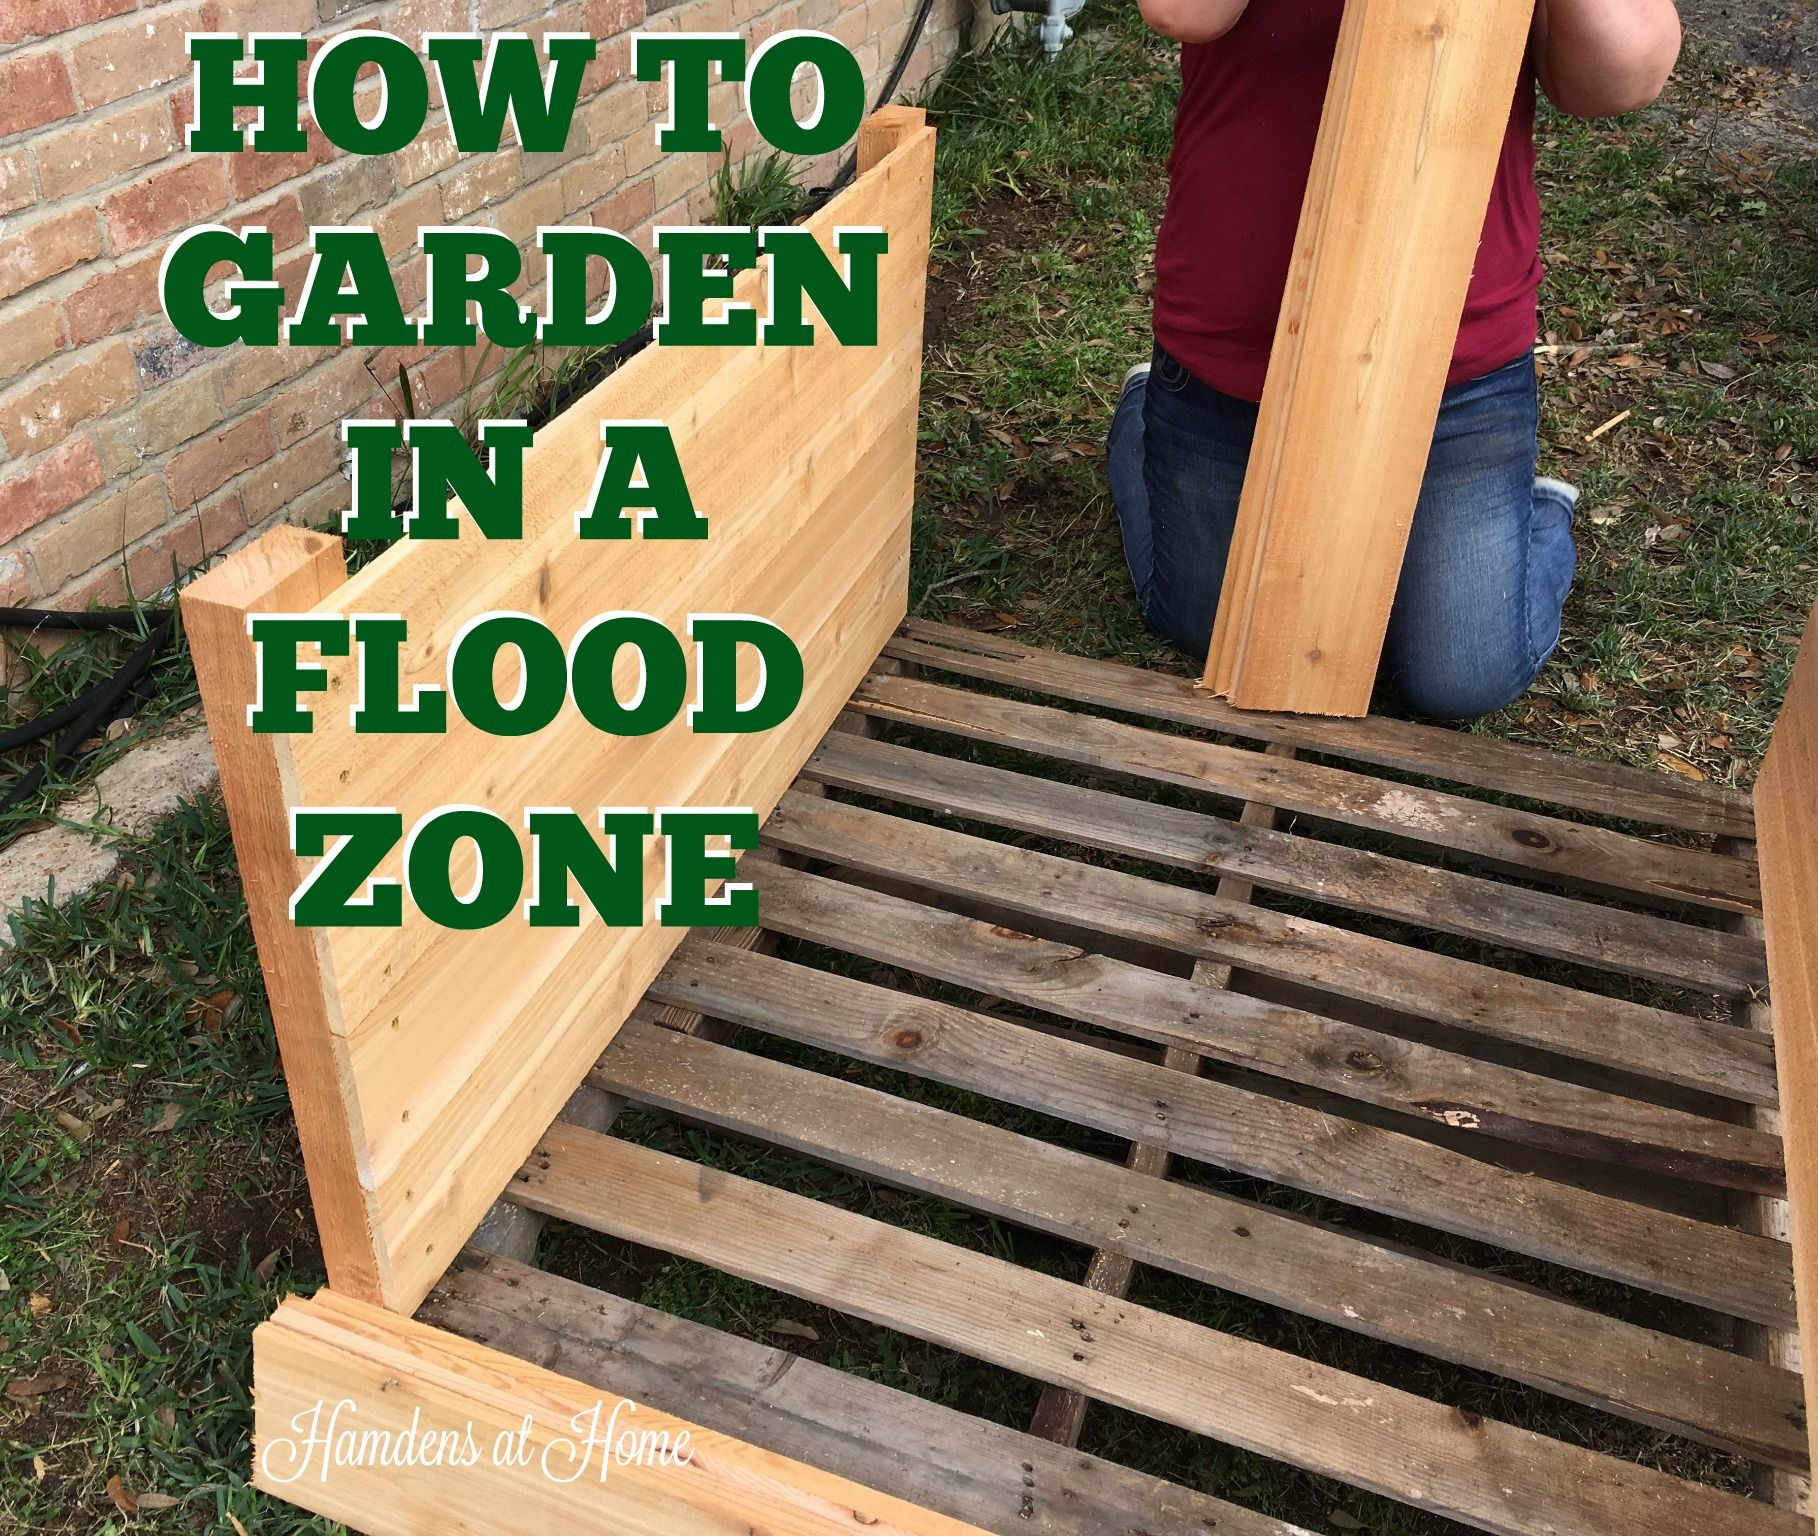 How To Garden In A Flood Zone (With Images